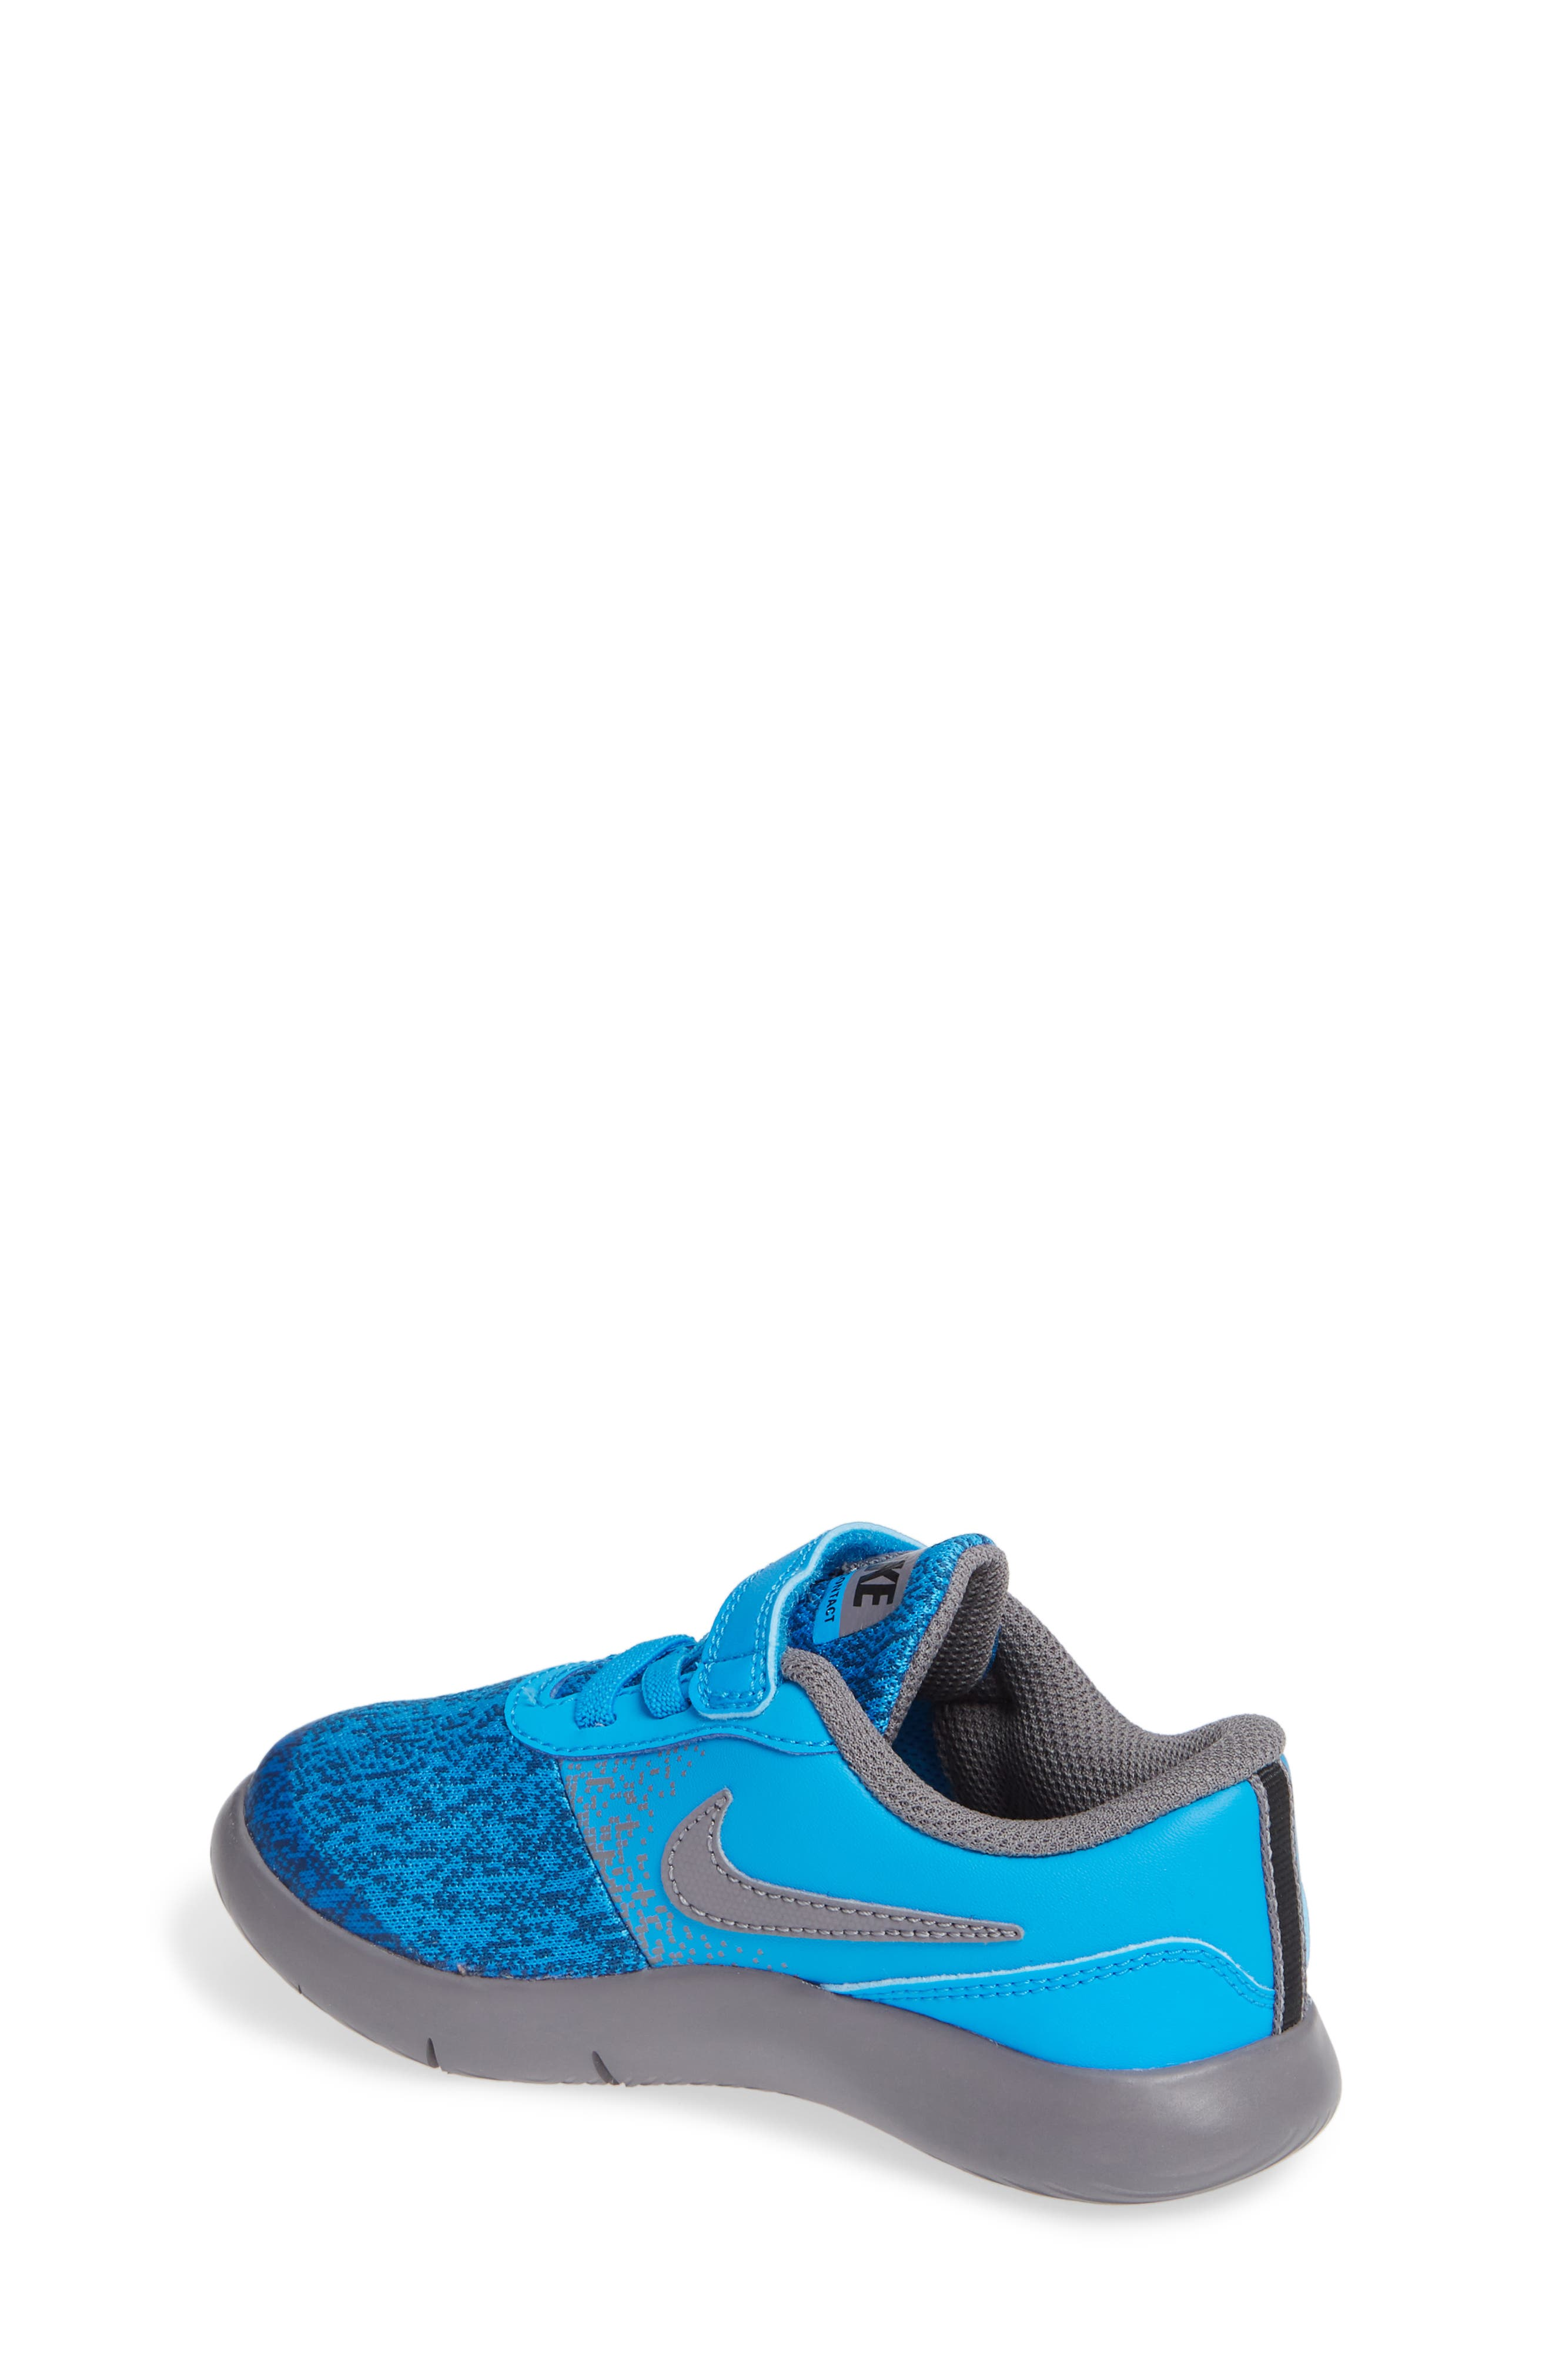 Flex Contact Running Shoe,                             Alternate thumbnail 2, color,                             BLUE HERO/ GUNSMOKE/ GREEN